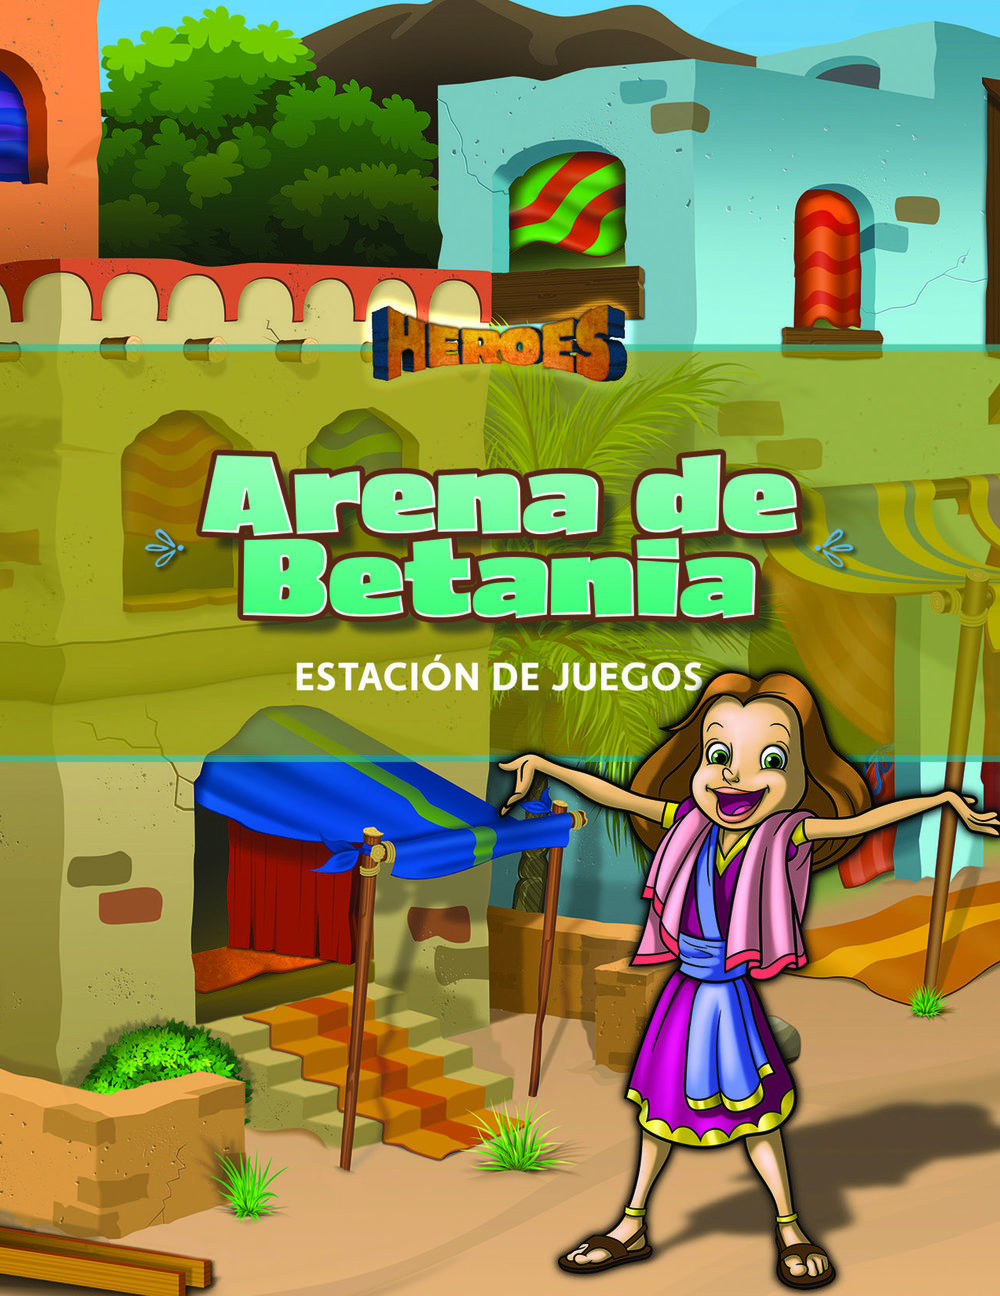 Heroes VBS Bethany Arena Guide (Game Station) (Spanish)